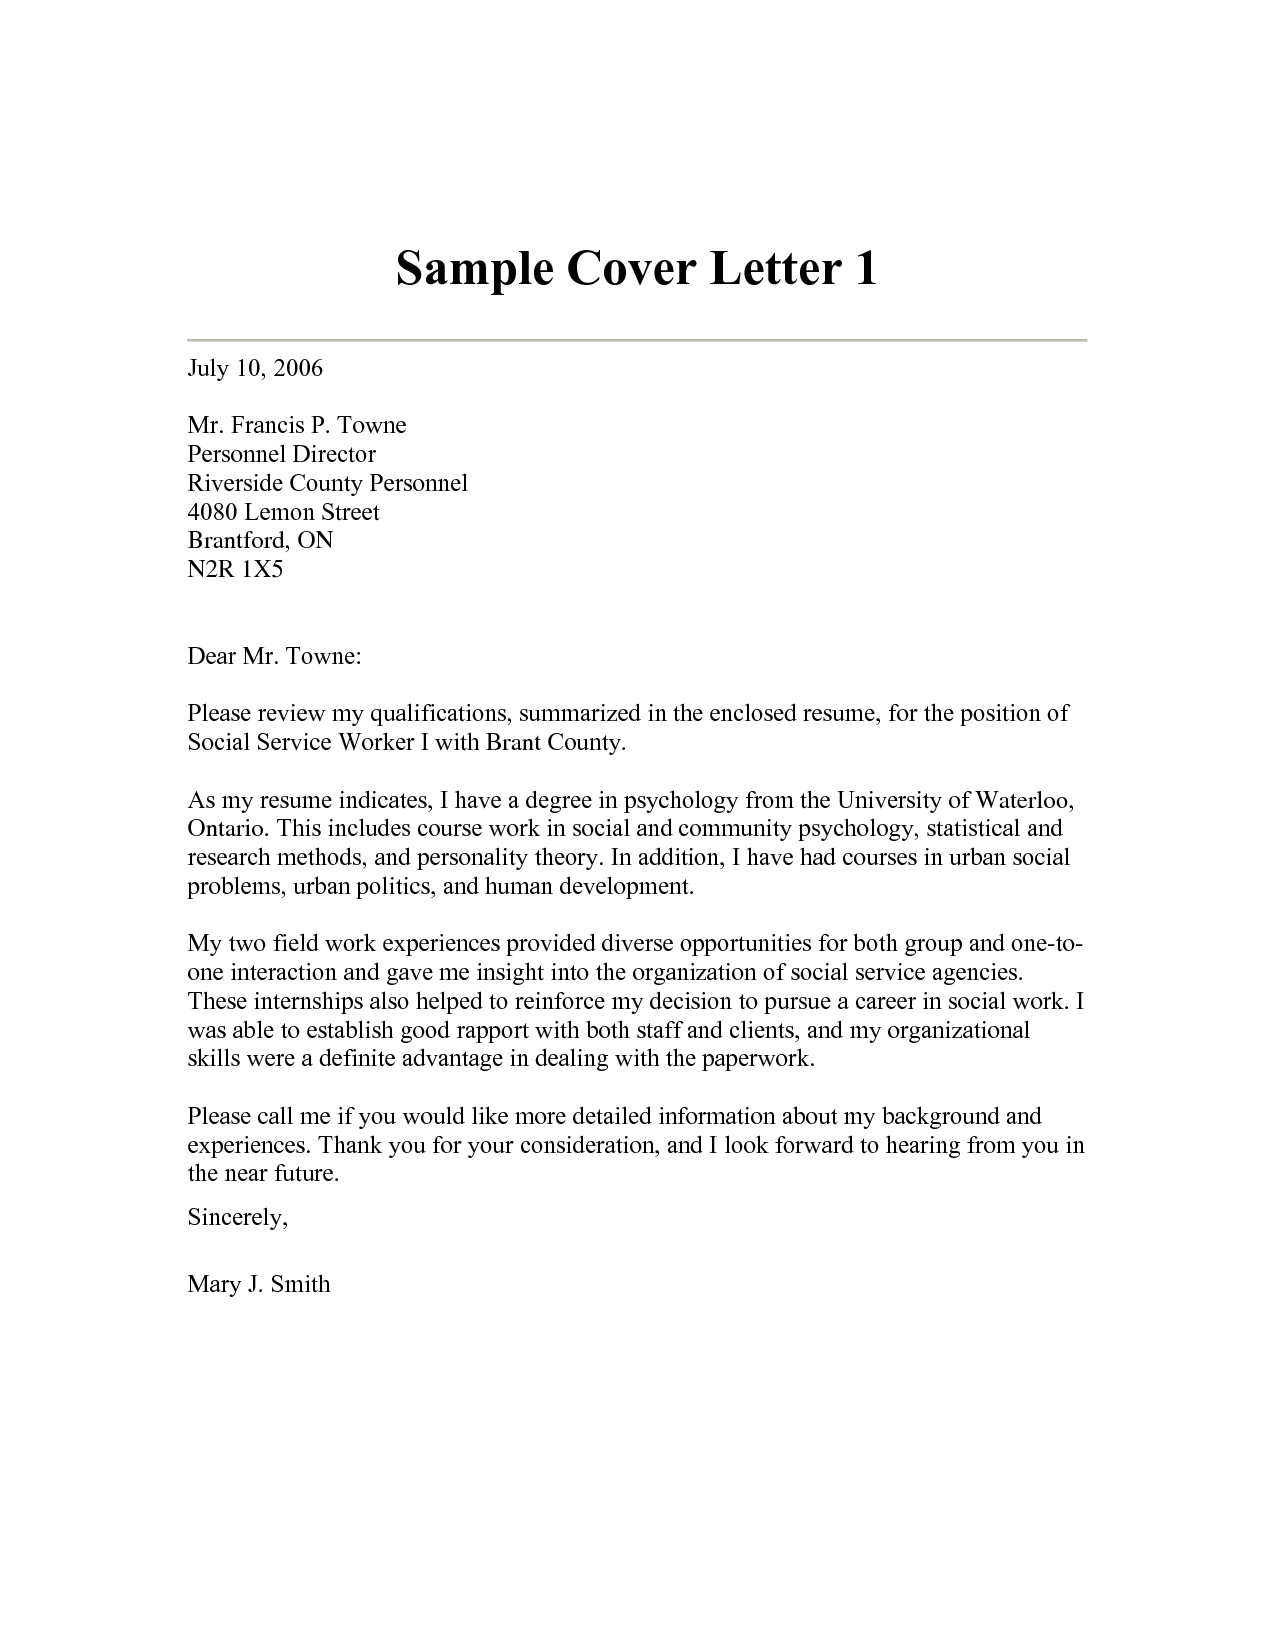 Cover Letters for social Service Jobs Sample Cover Letter for Director Of social Services